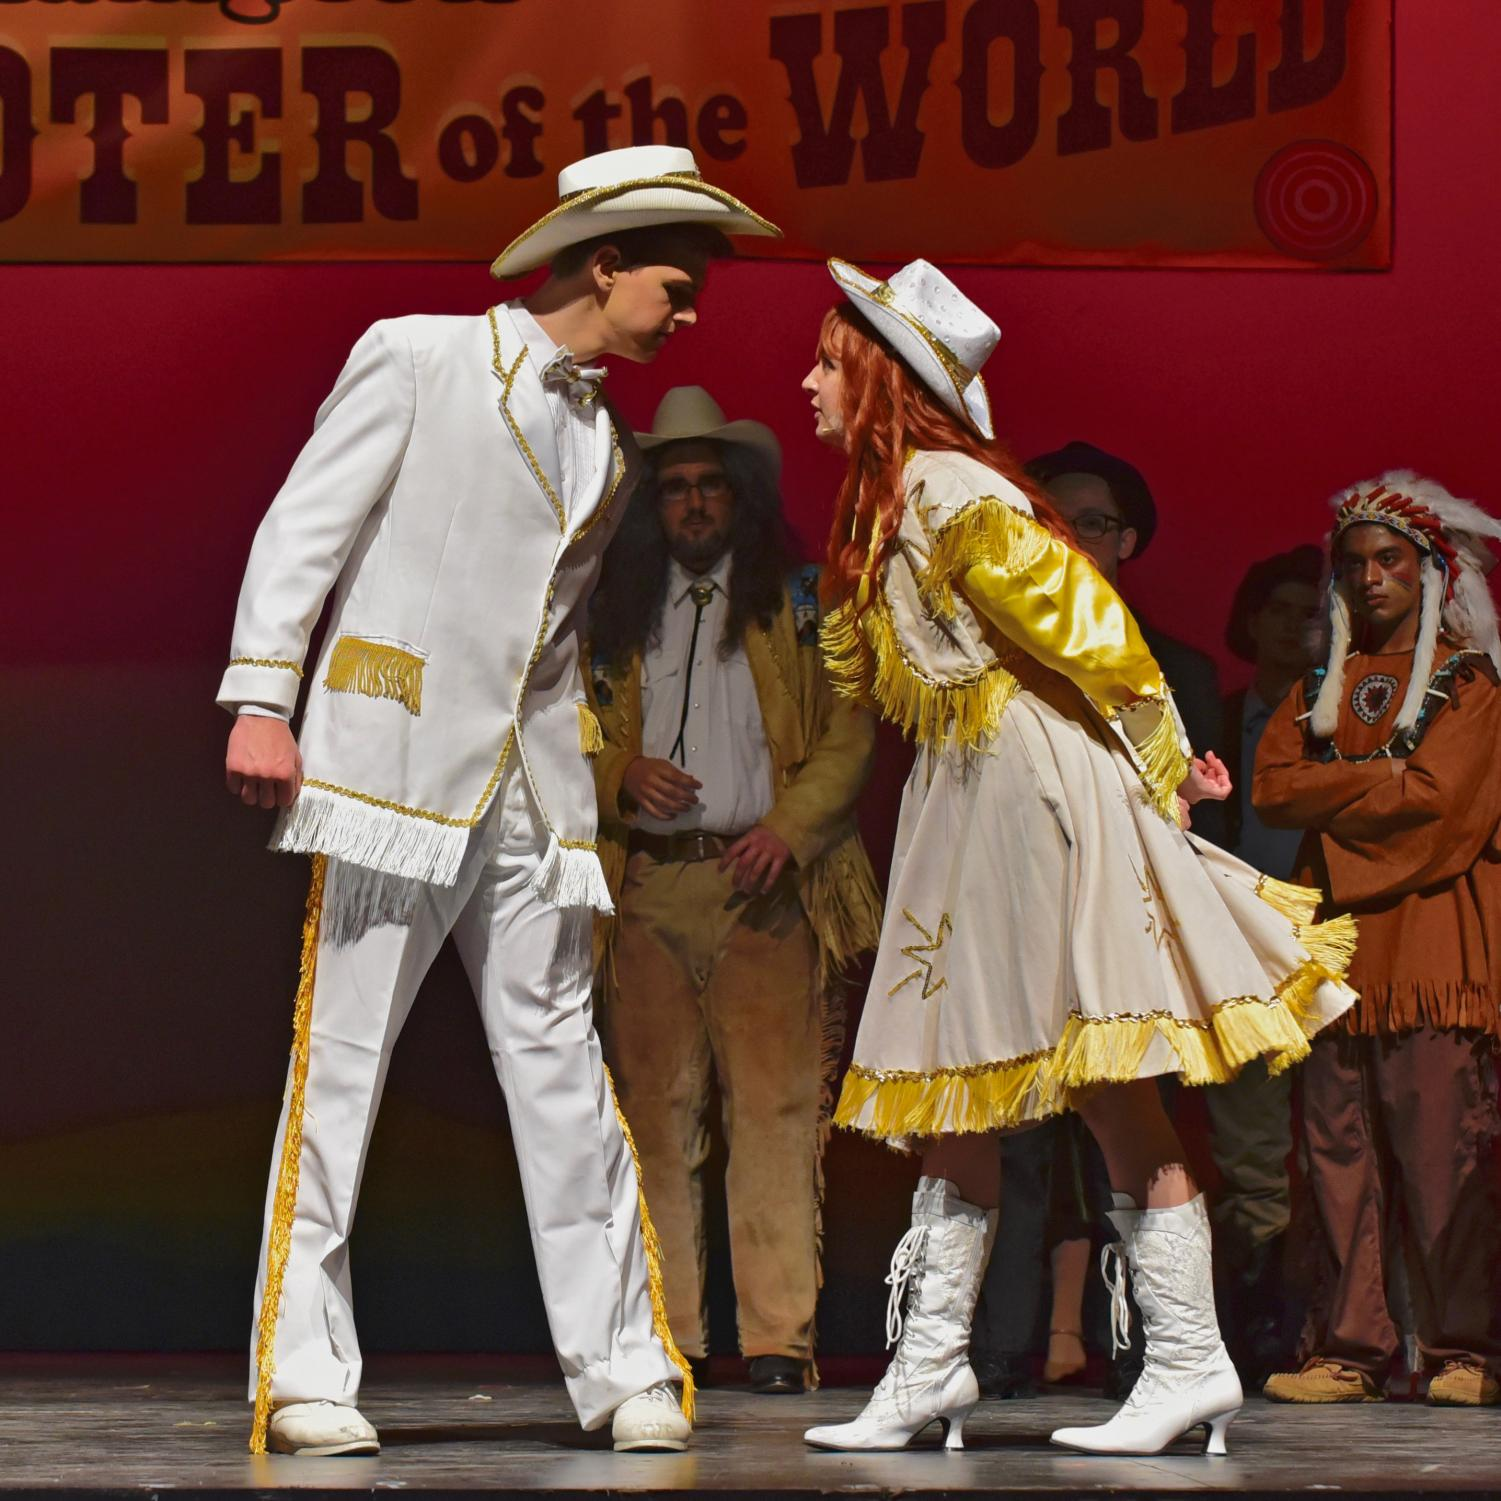 Collin McCormick as Frank Butler and Katelyn Marcovecchio as Annie Oakley duel on stage.